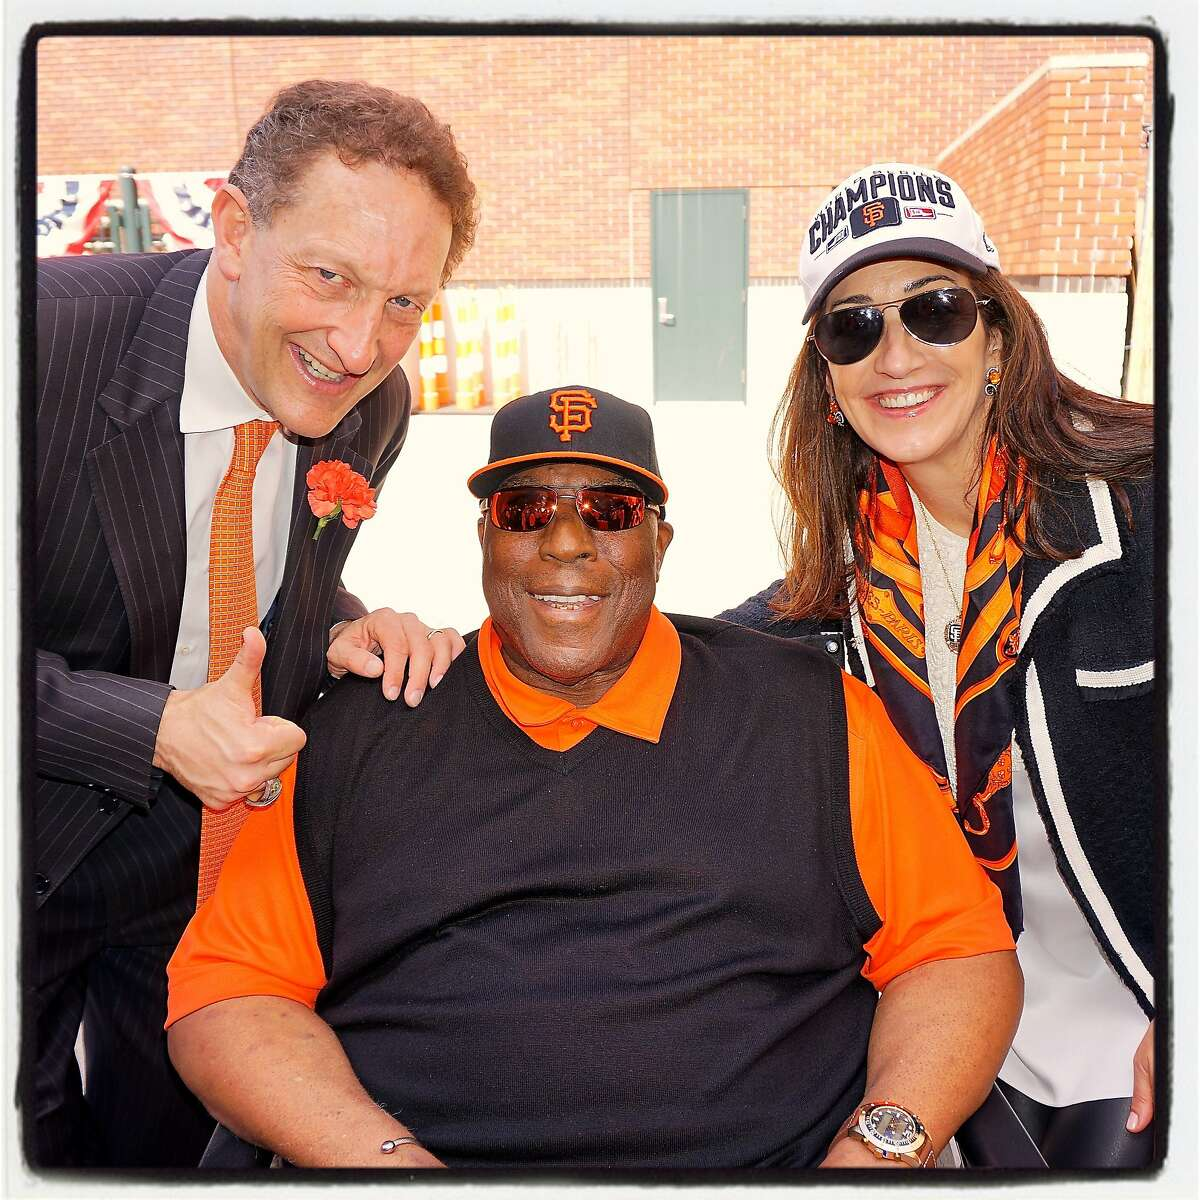 SF Giants President-CEO (left) with Hall-of-Famer Willie McCovey and his wife, Pam Baer, at AT&T ballpark for the team's home opener. April 2016.